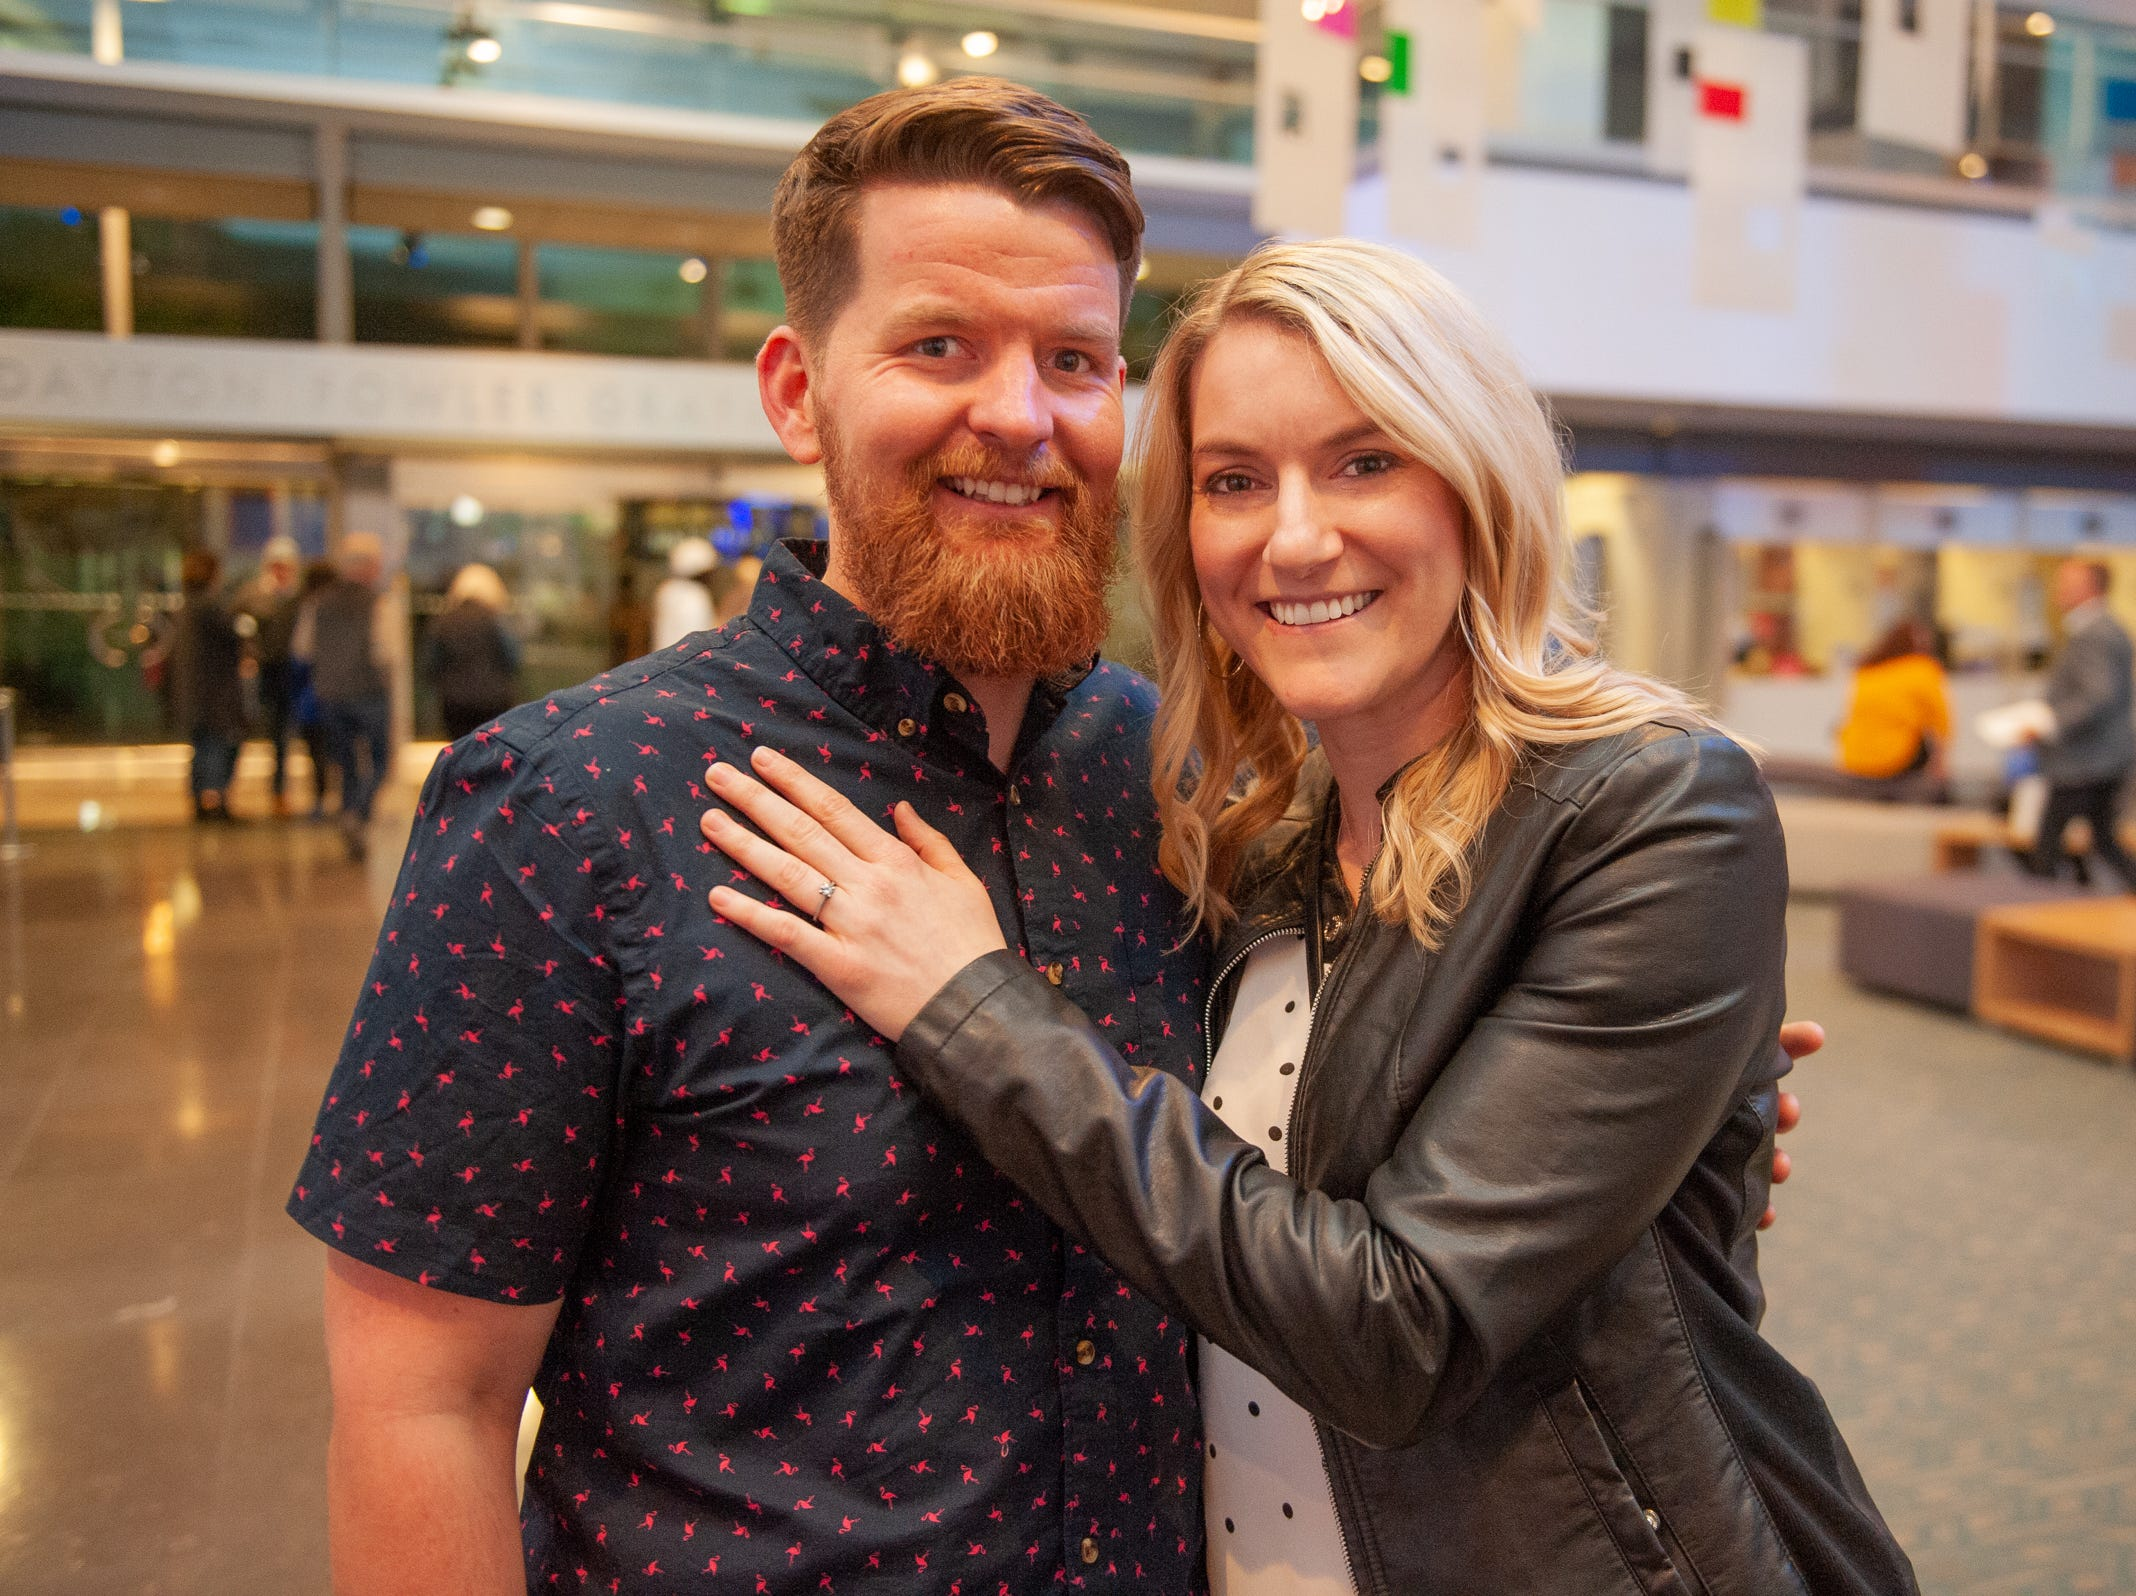 """Josh Shore and new fiancee Kristin Harris smile after she said yes to his proposal during """"Arizona Storytellers: Romance or Not"""" at Scottsdale Center for the Performing Arts in Scottsdale, Ariz., Wednesday, Feb. 13, 2019."""